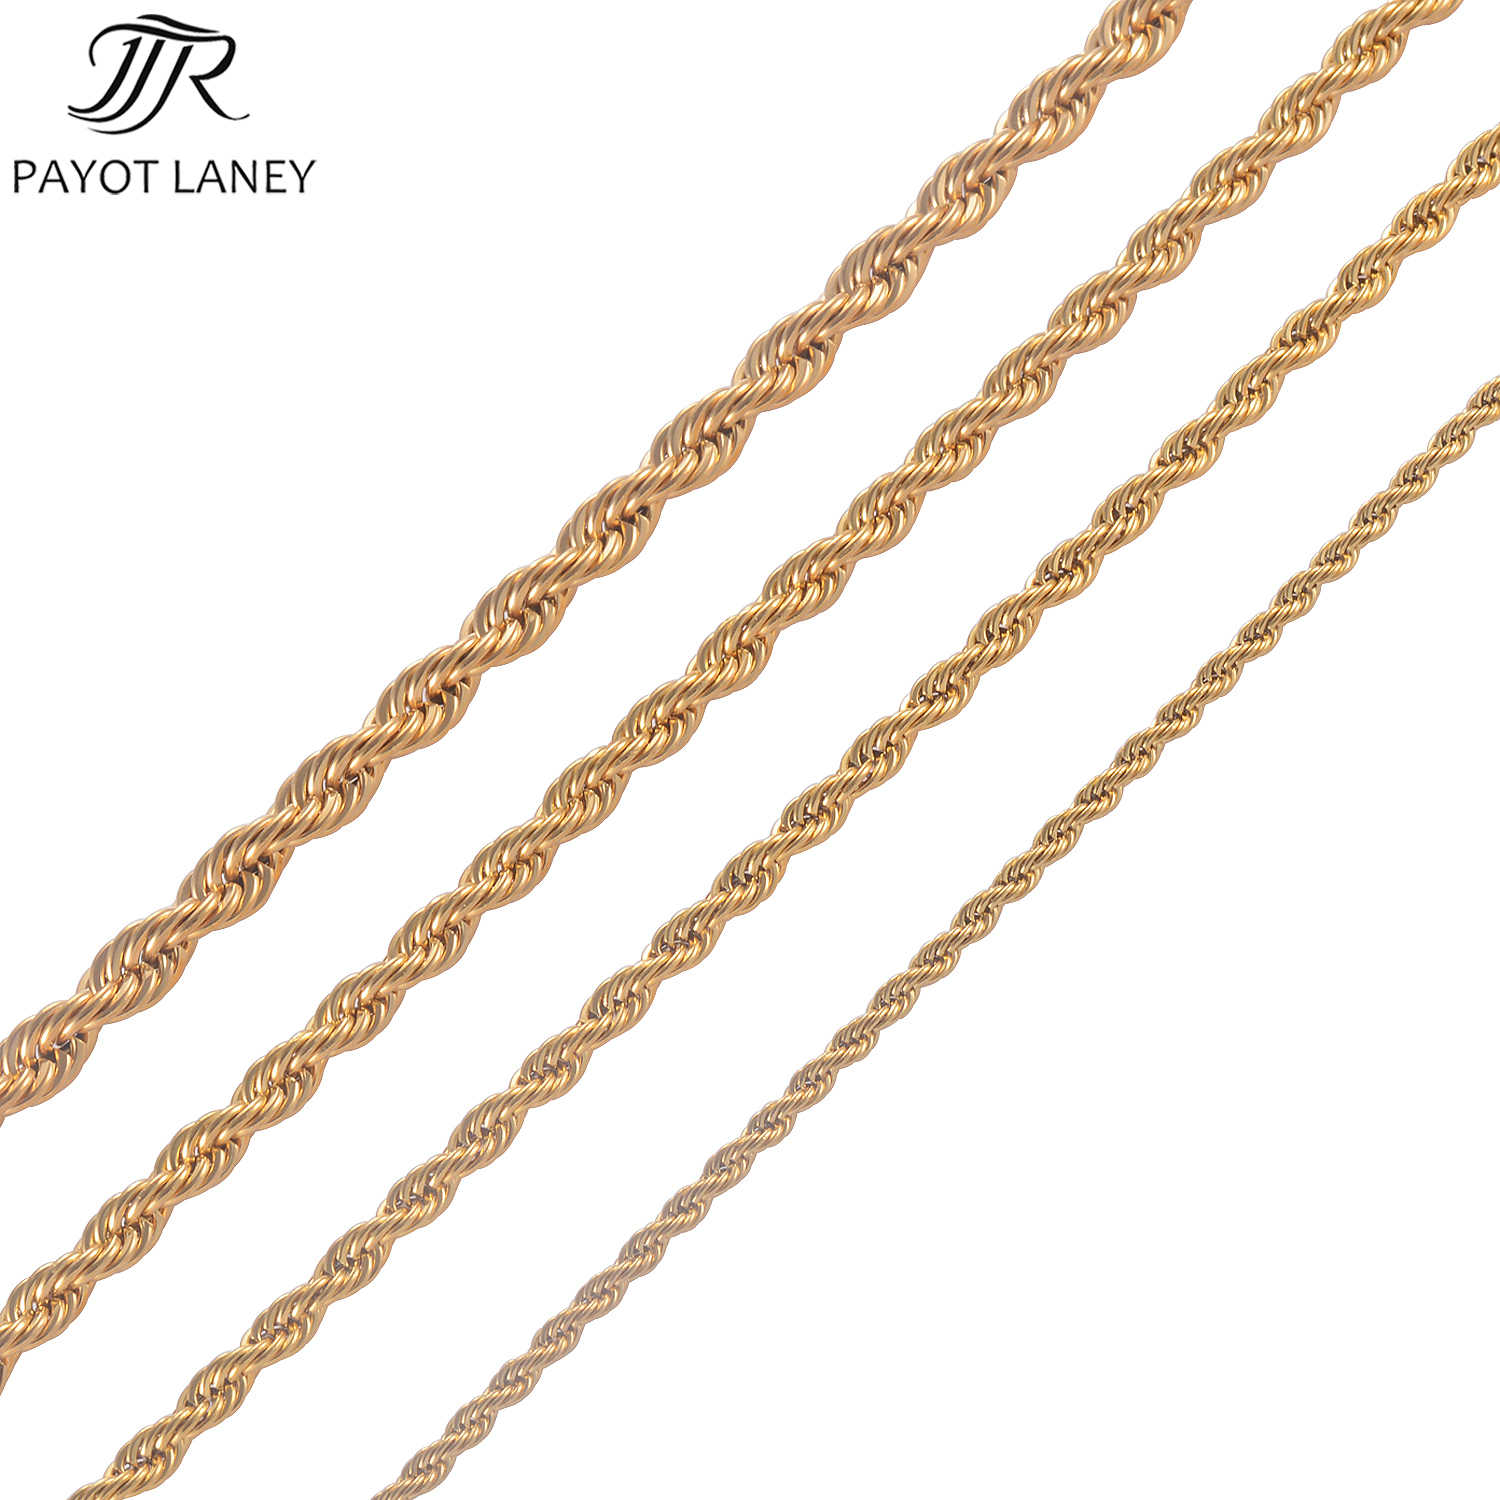 High Quality Gold Plating Rope Chain Stainless Steel Necklace For Women Men Gold Fashion Rope Chain Jewelry Gift